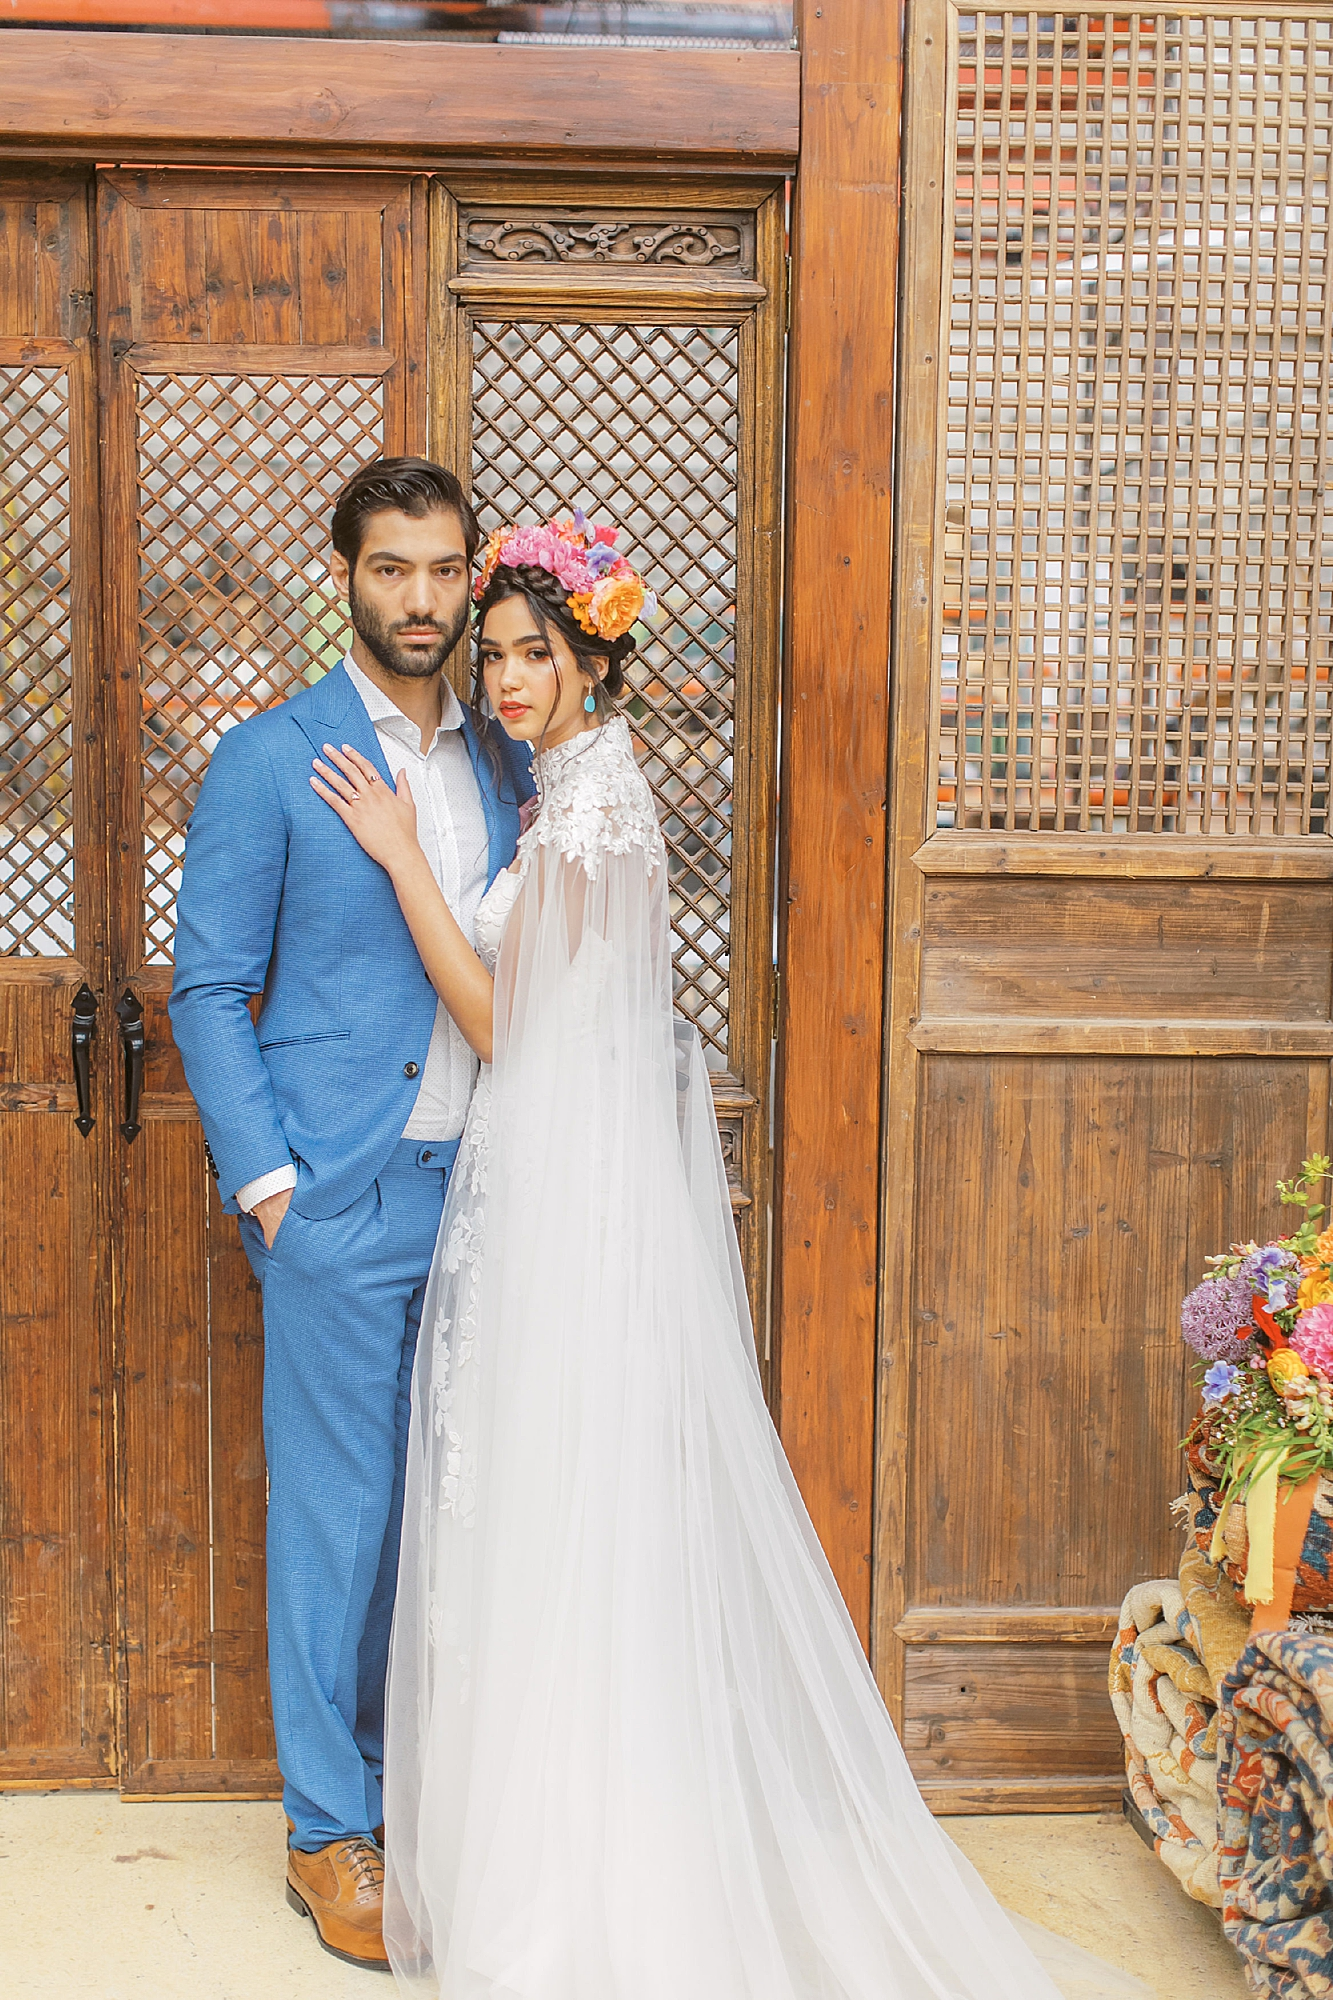 Vibrant and Colorful Frida Kahlo Inspired Wedding Photography by Magdalena Studios 0022